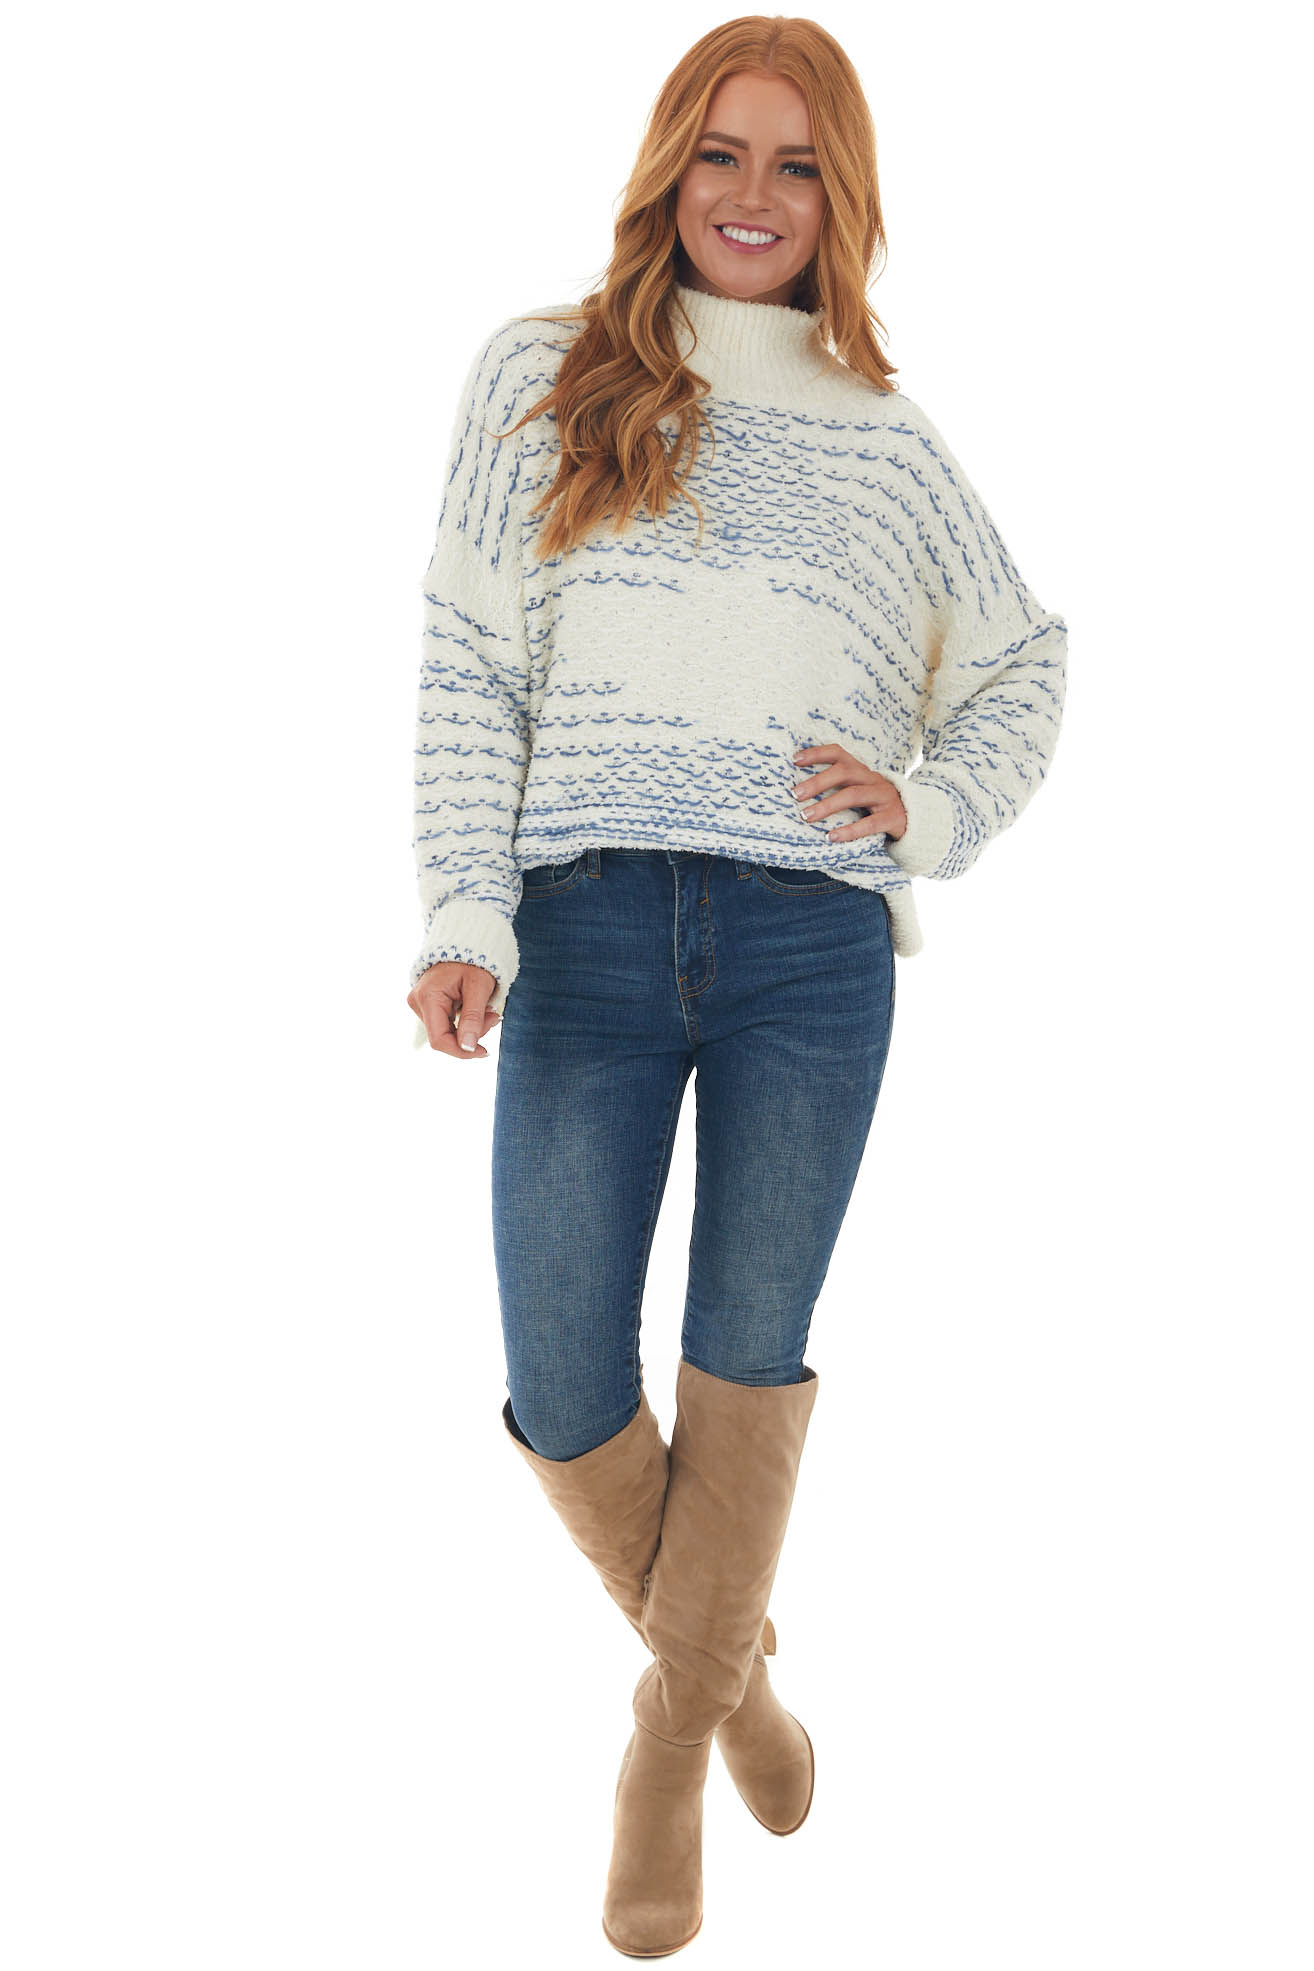 Ivory Printed Mock Neck Soft Knit Sweater Top